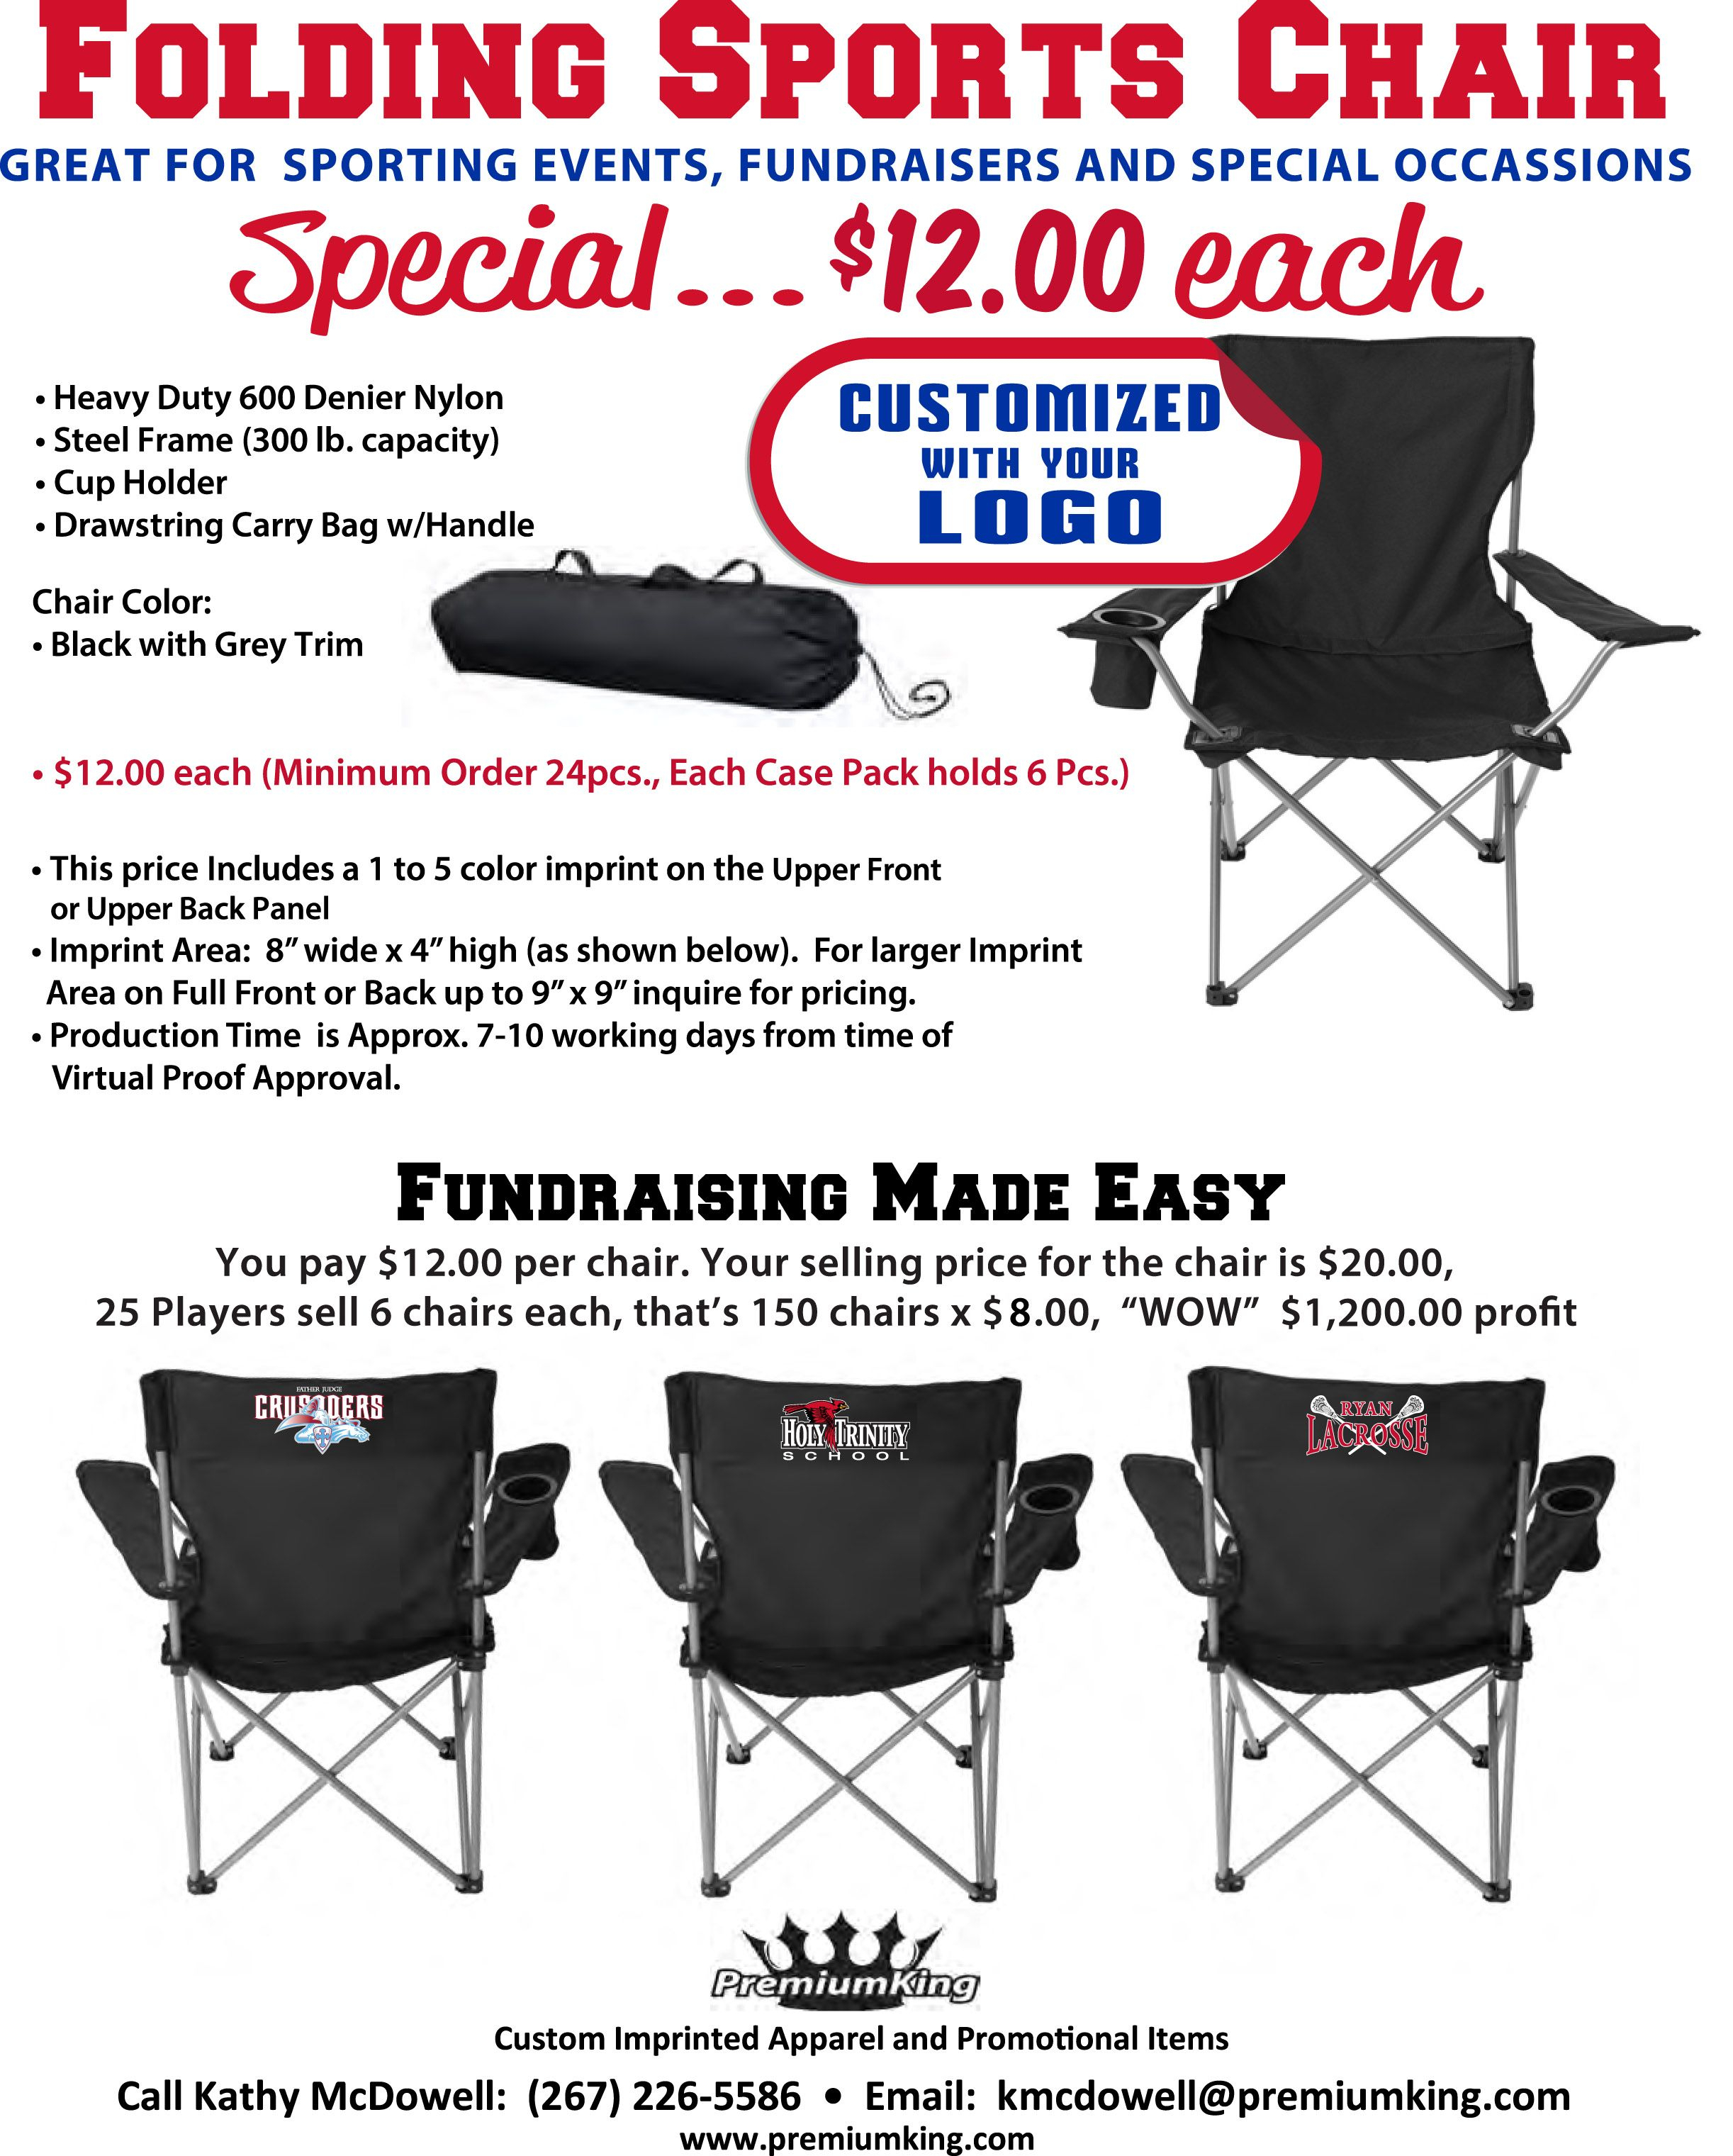 10 Beautiful Best Fundraising Ideas For Youth Sports Teams fundraiser idea folding sports chairs with team logo fundraising 5